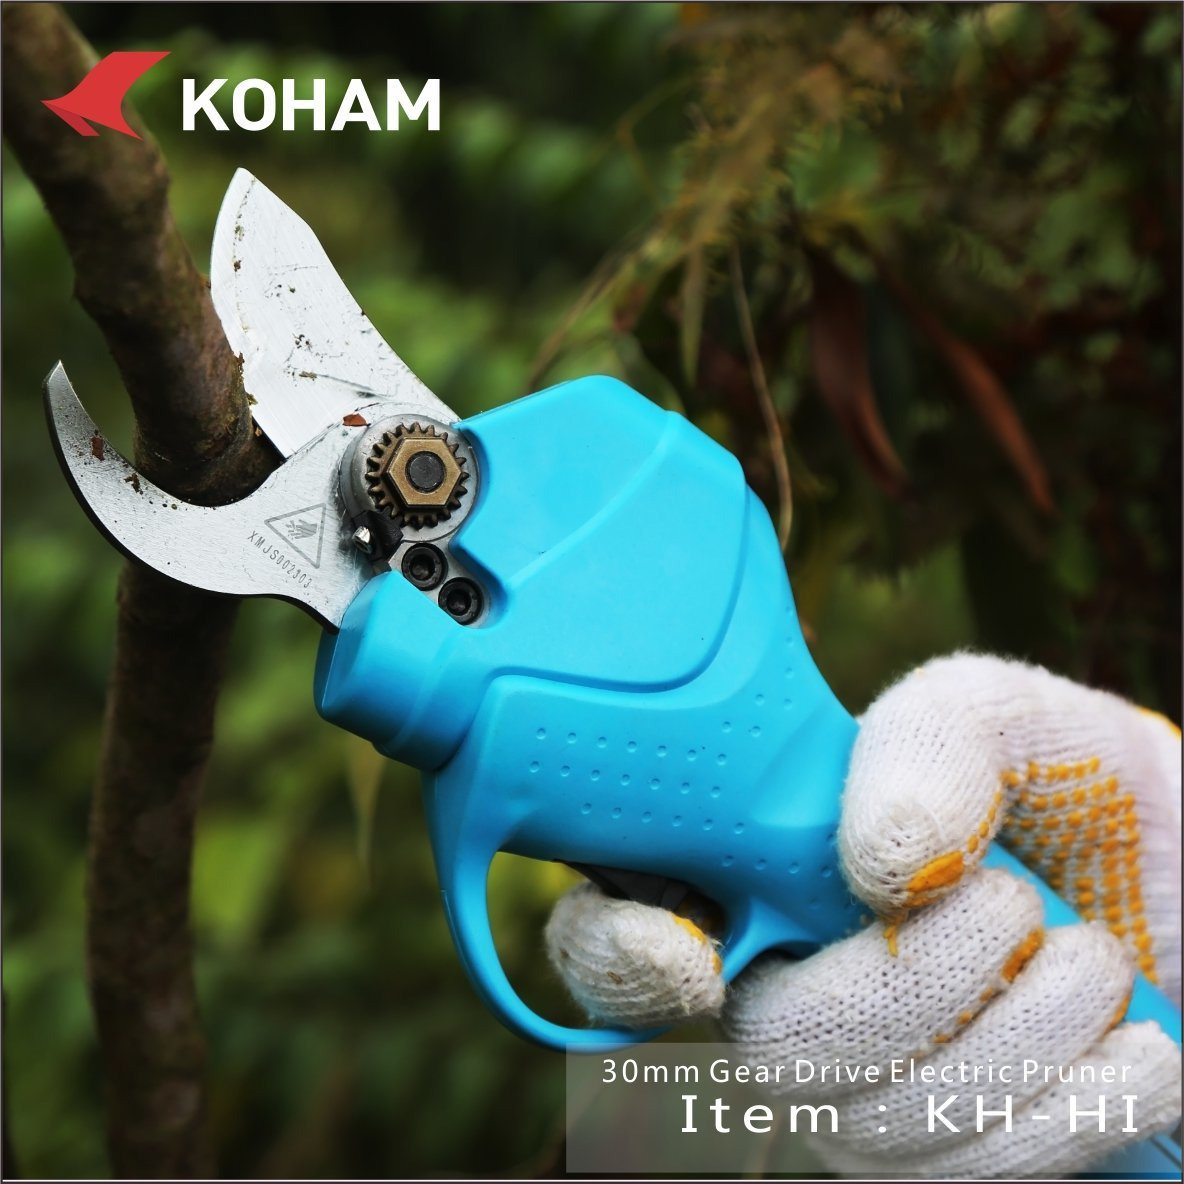 Koham 28mm Gear Driver Electric Pruner pictures & photos